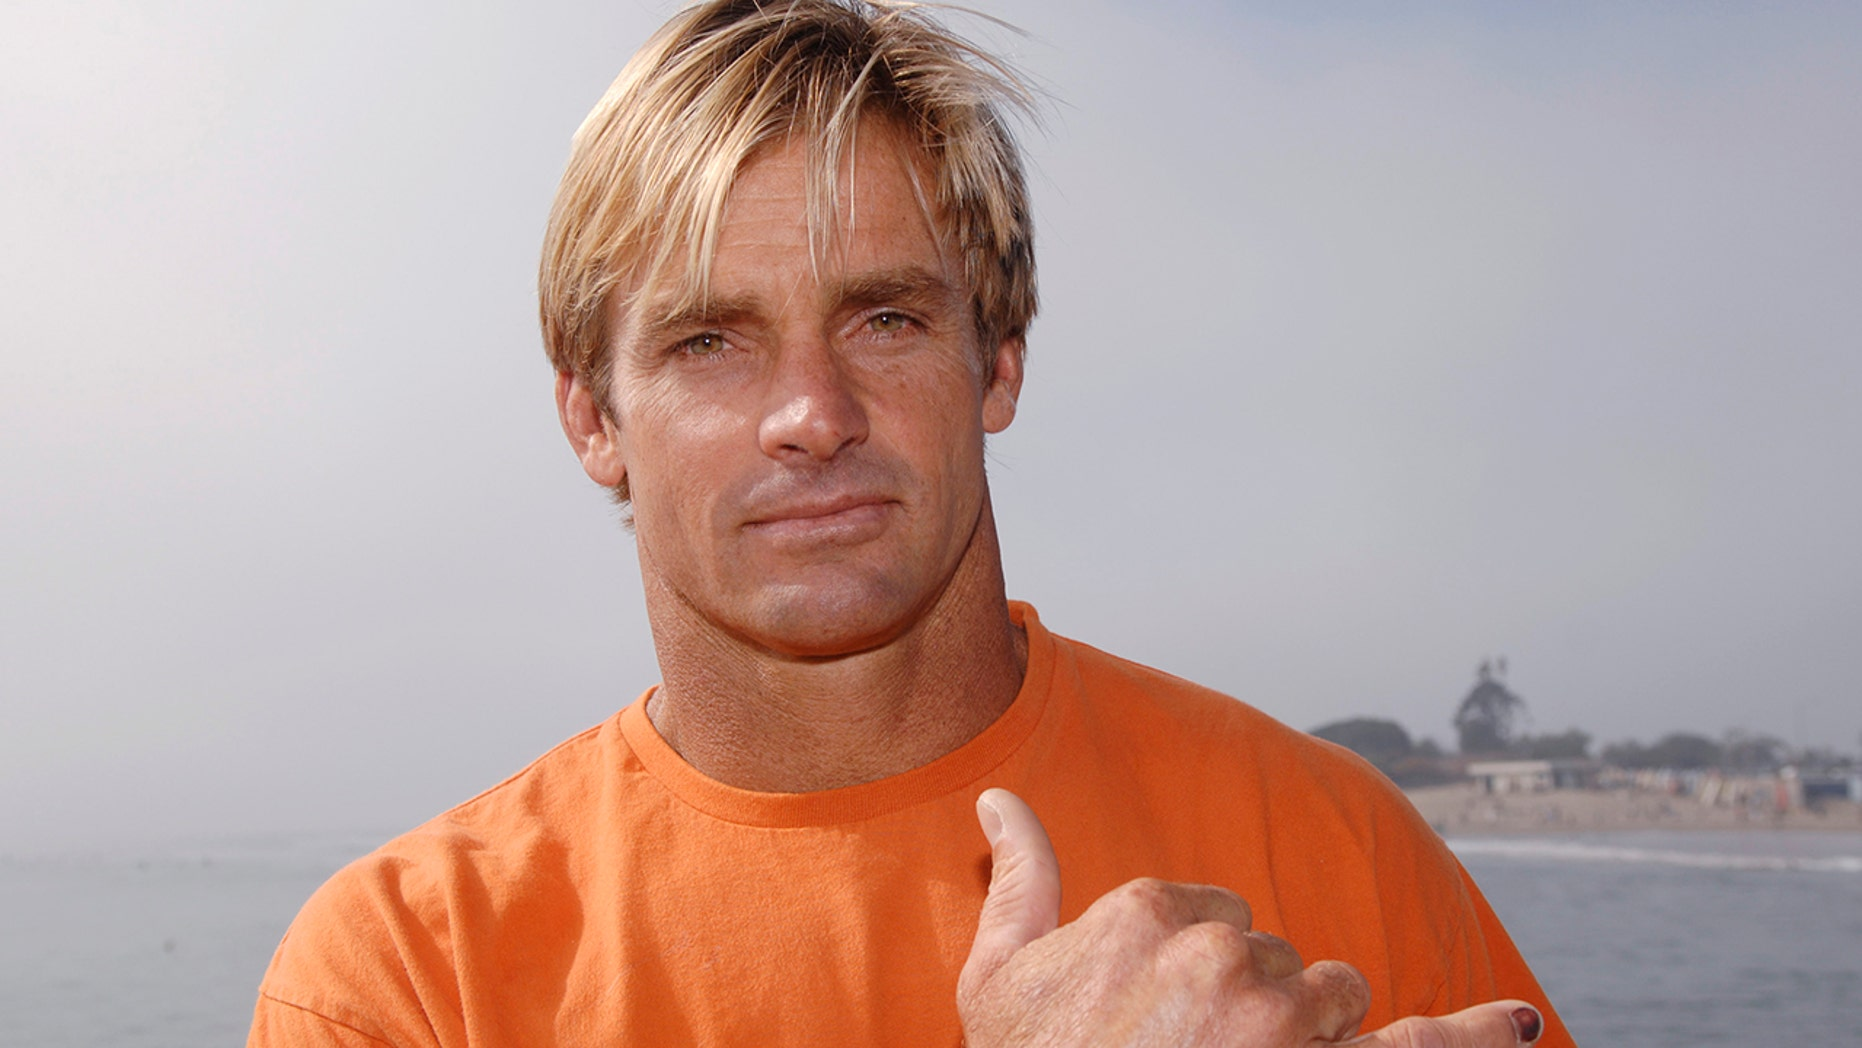 Laird Hamilton helped rescue several people from devastating floods in Hawaii.